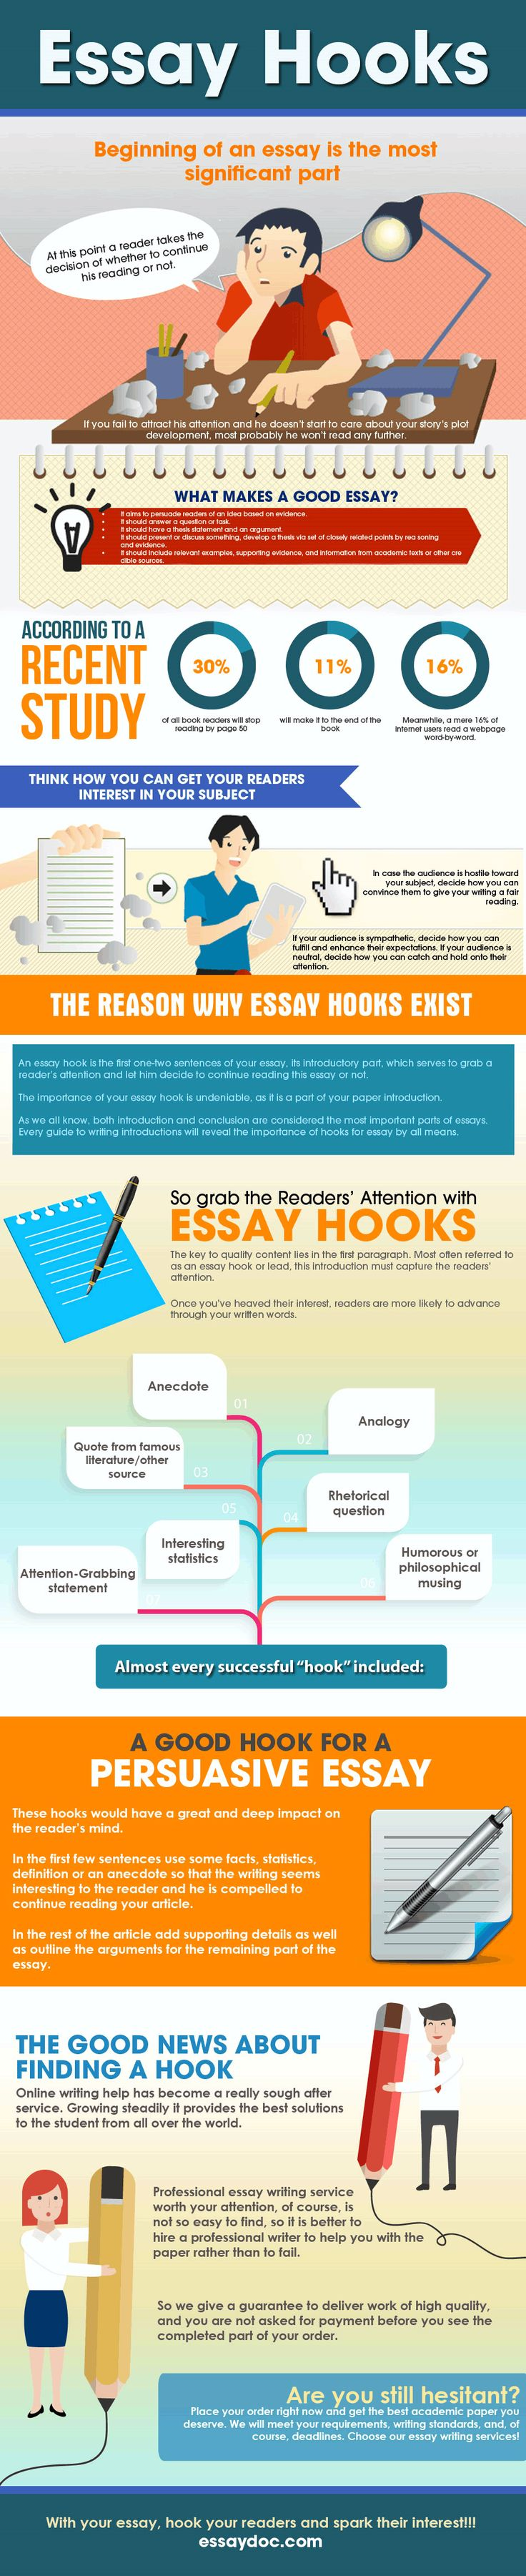 15 must see essayist pins kurt vonnegut quotes role models and essay hooks infographic